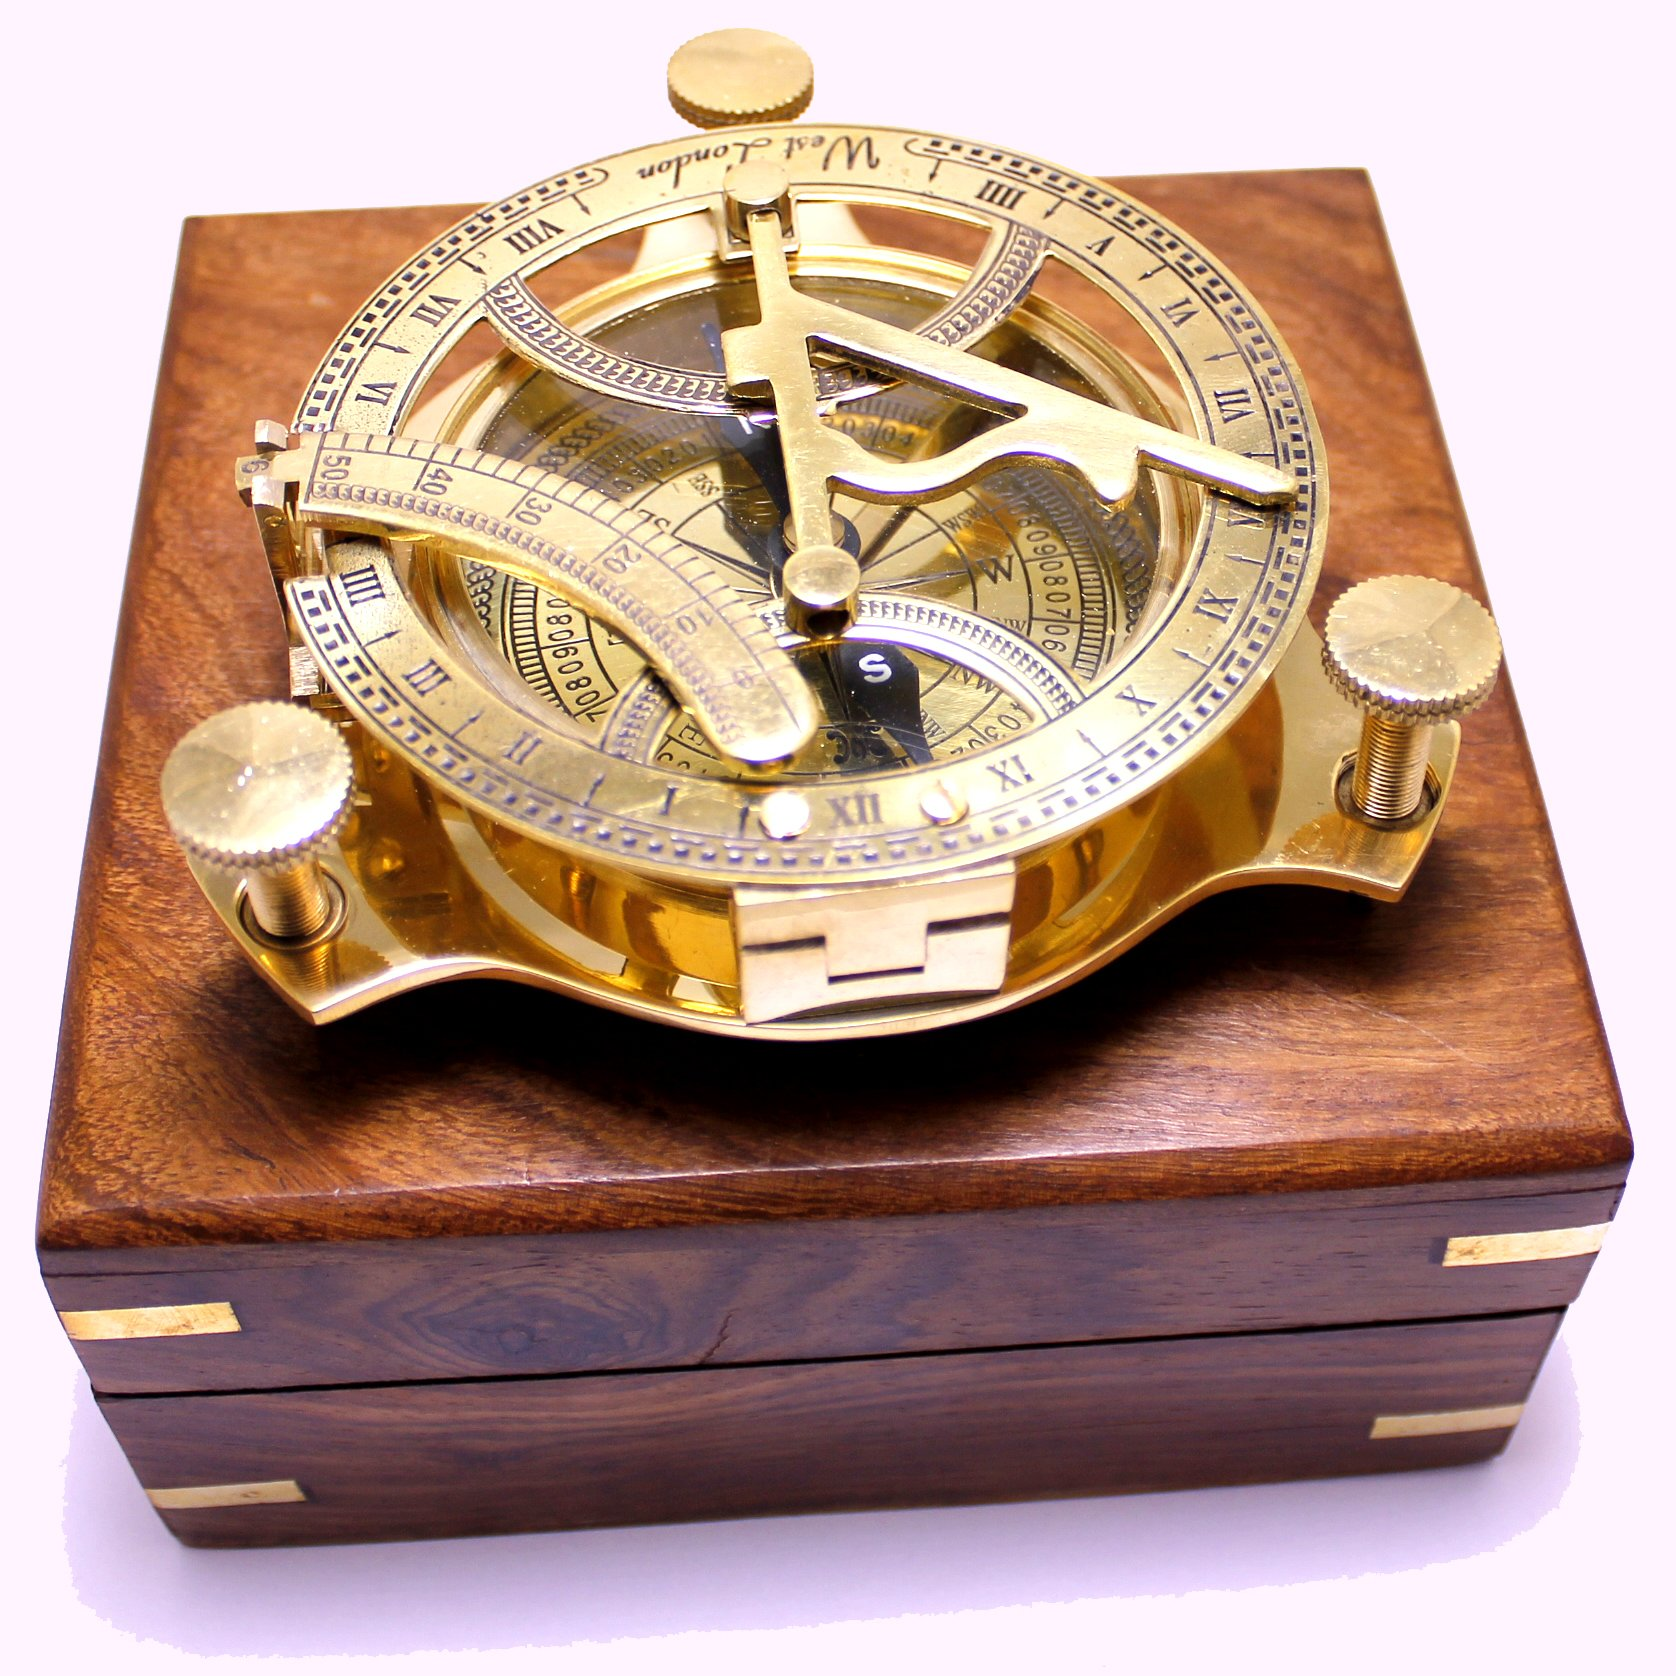 Captain's Brass Triangle Sundial Compass 4'' - Brass Desk Compasses - Nautical Decor Home Decoration - Executive Promotional Gift